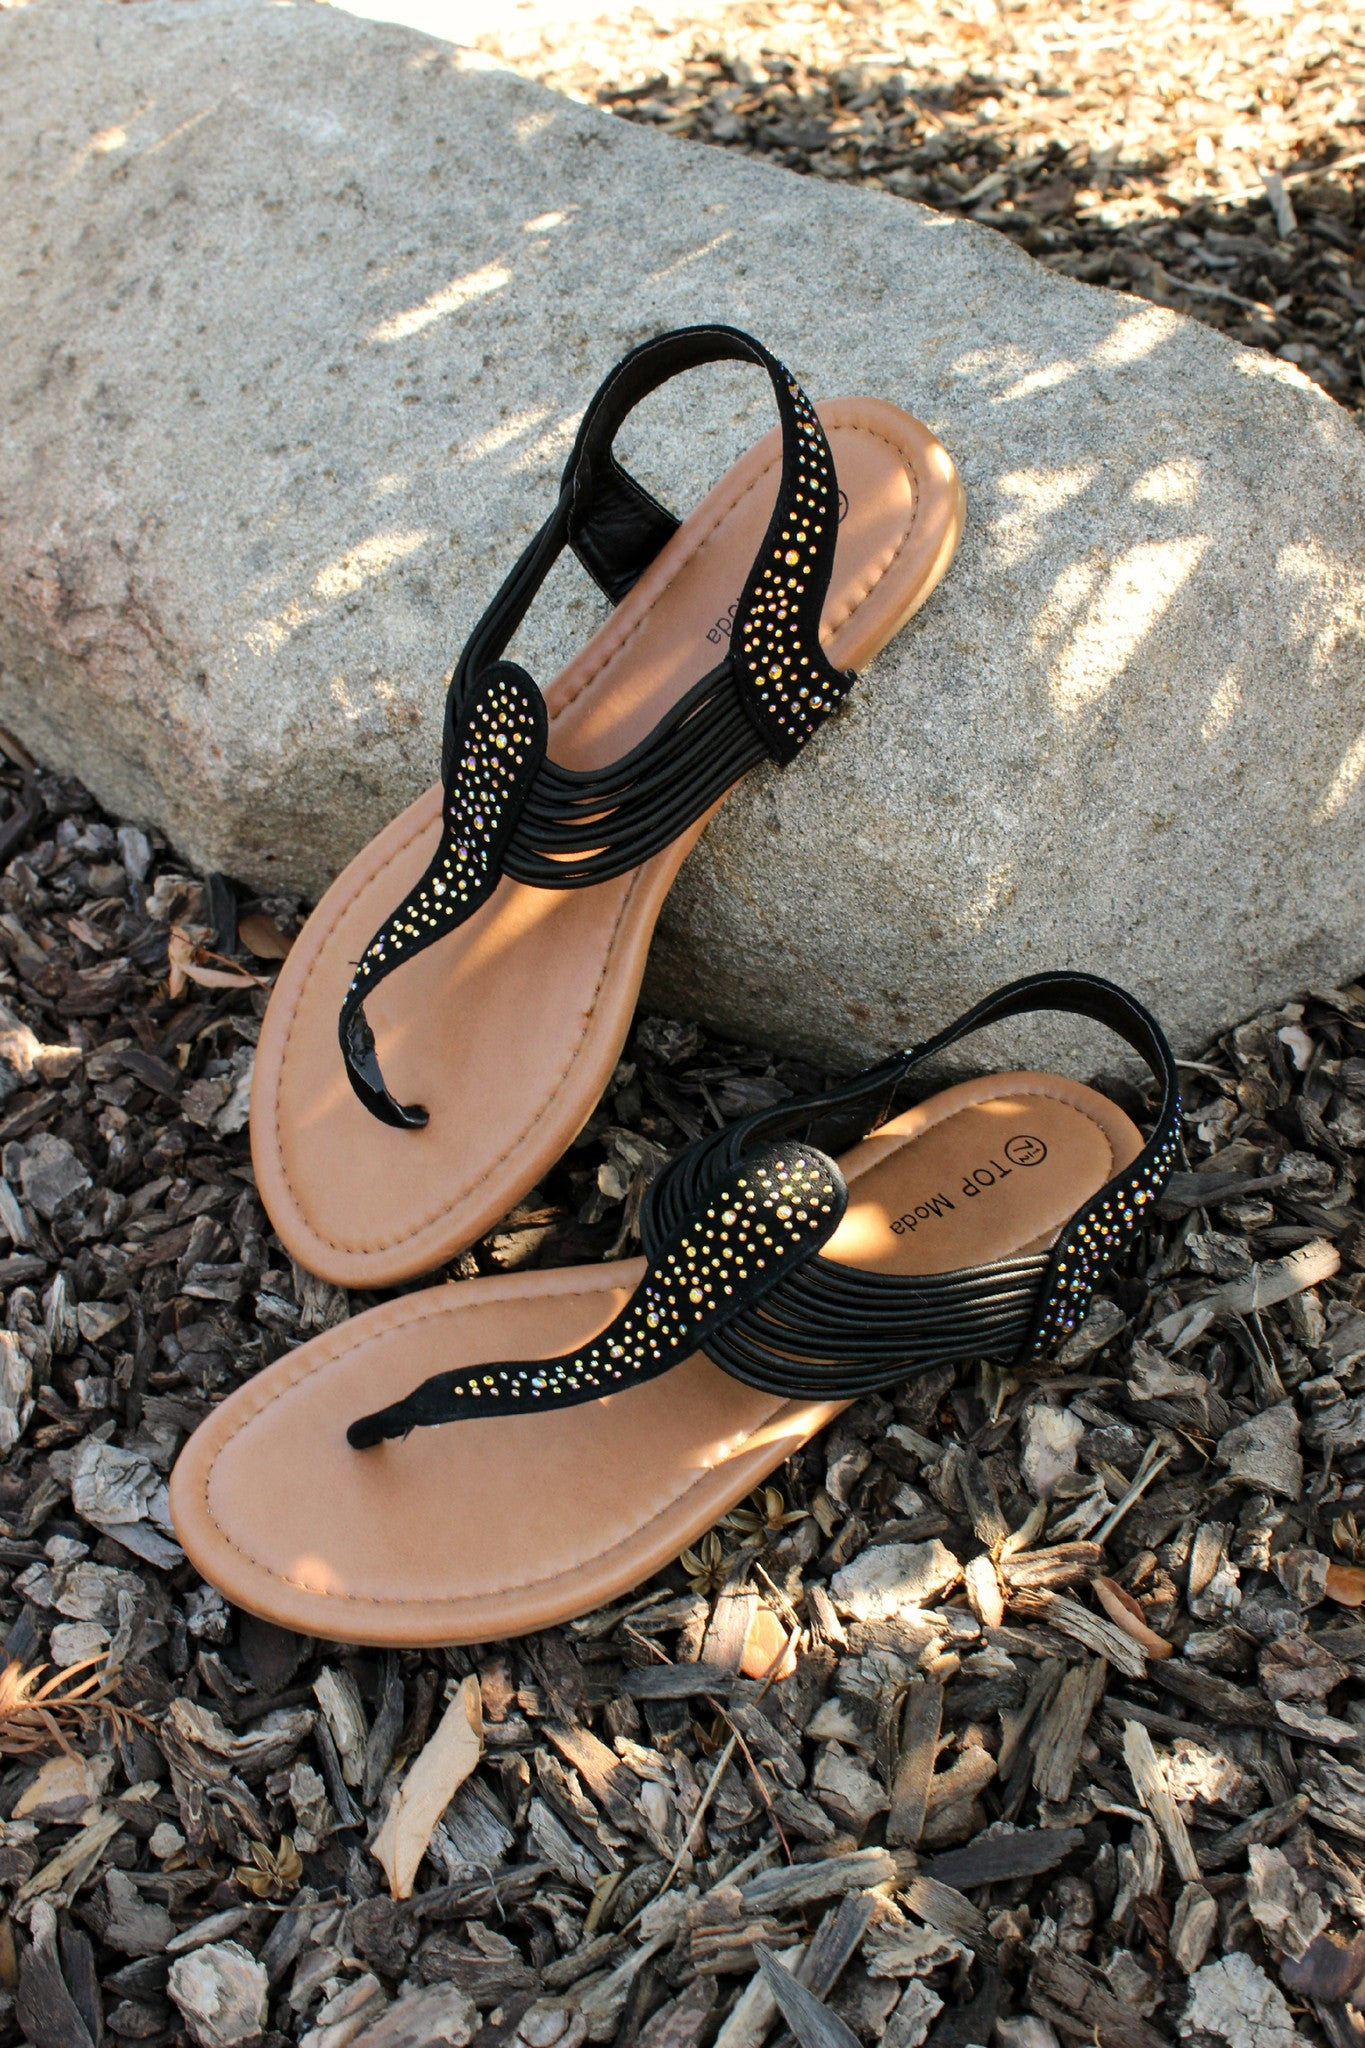 Call Me Later Sandals - Leah B. Boutique